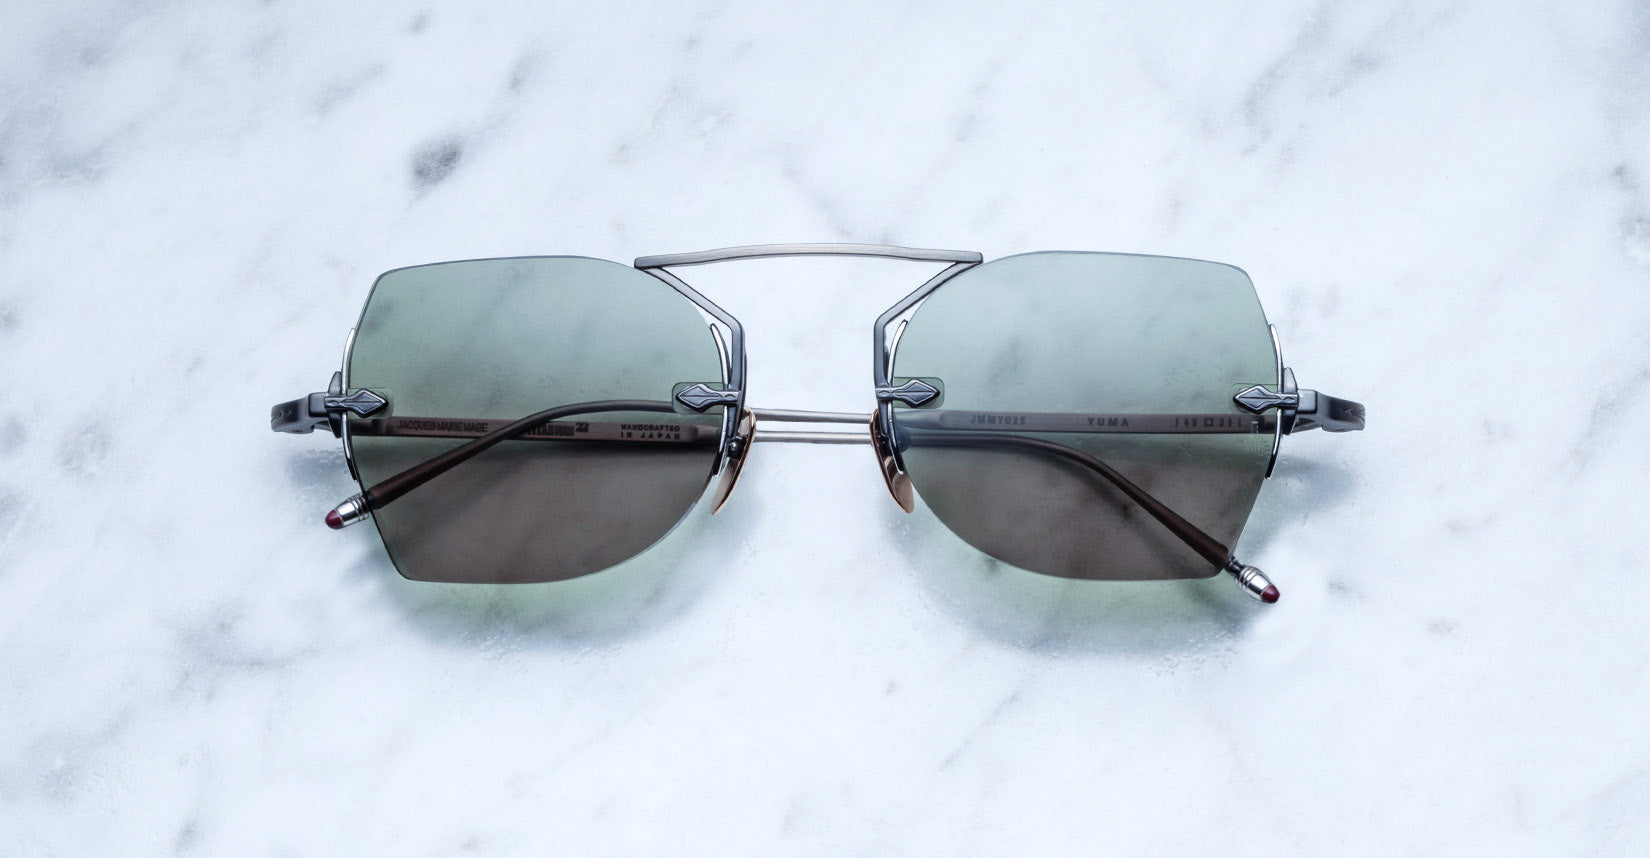 Jacques Marie Mage Yuma Steel Limited Edition sunglasses